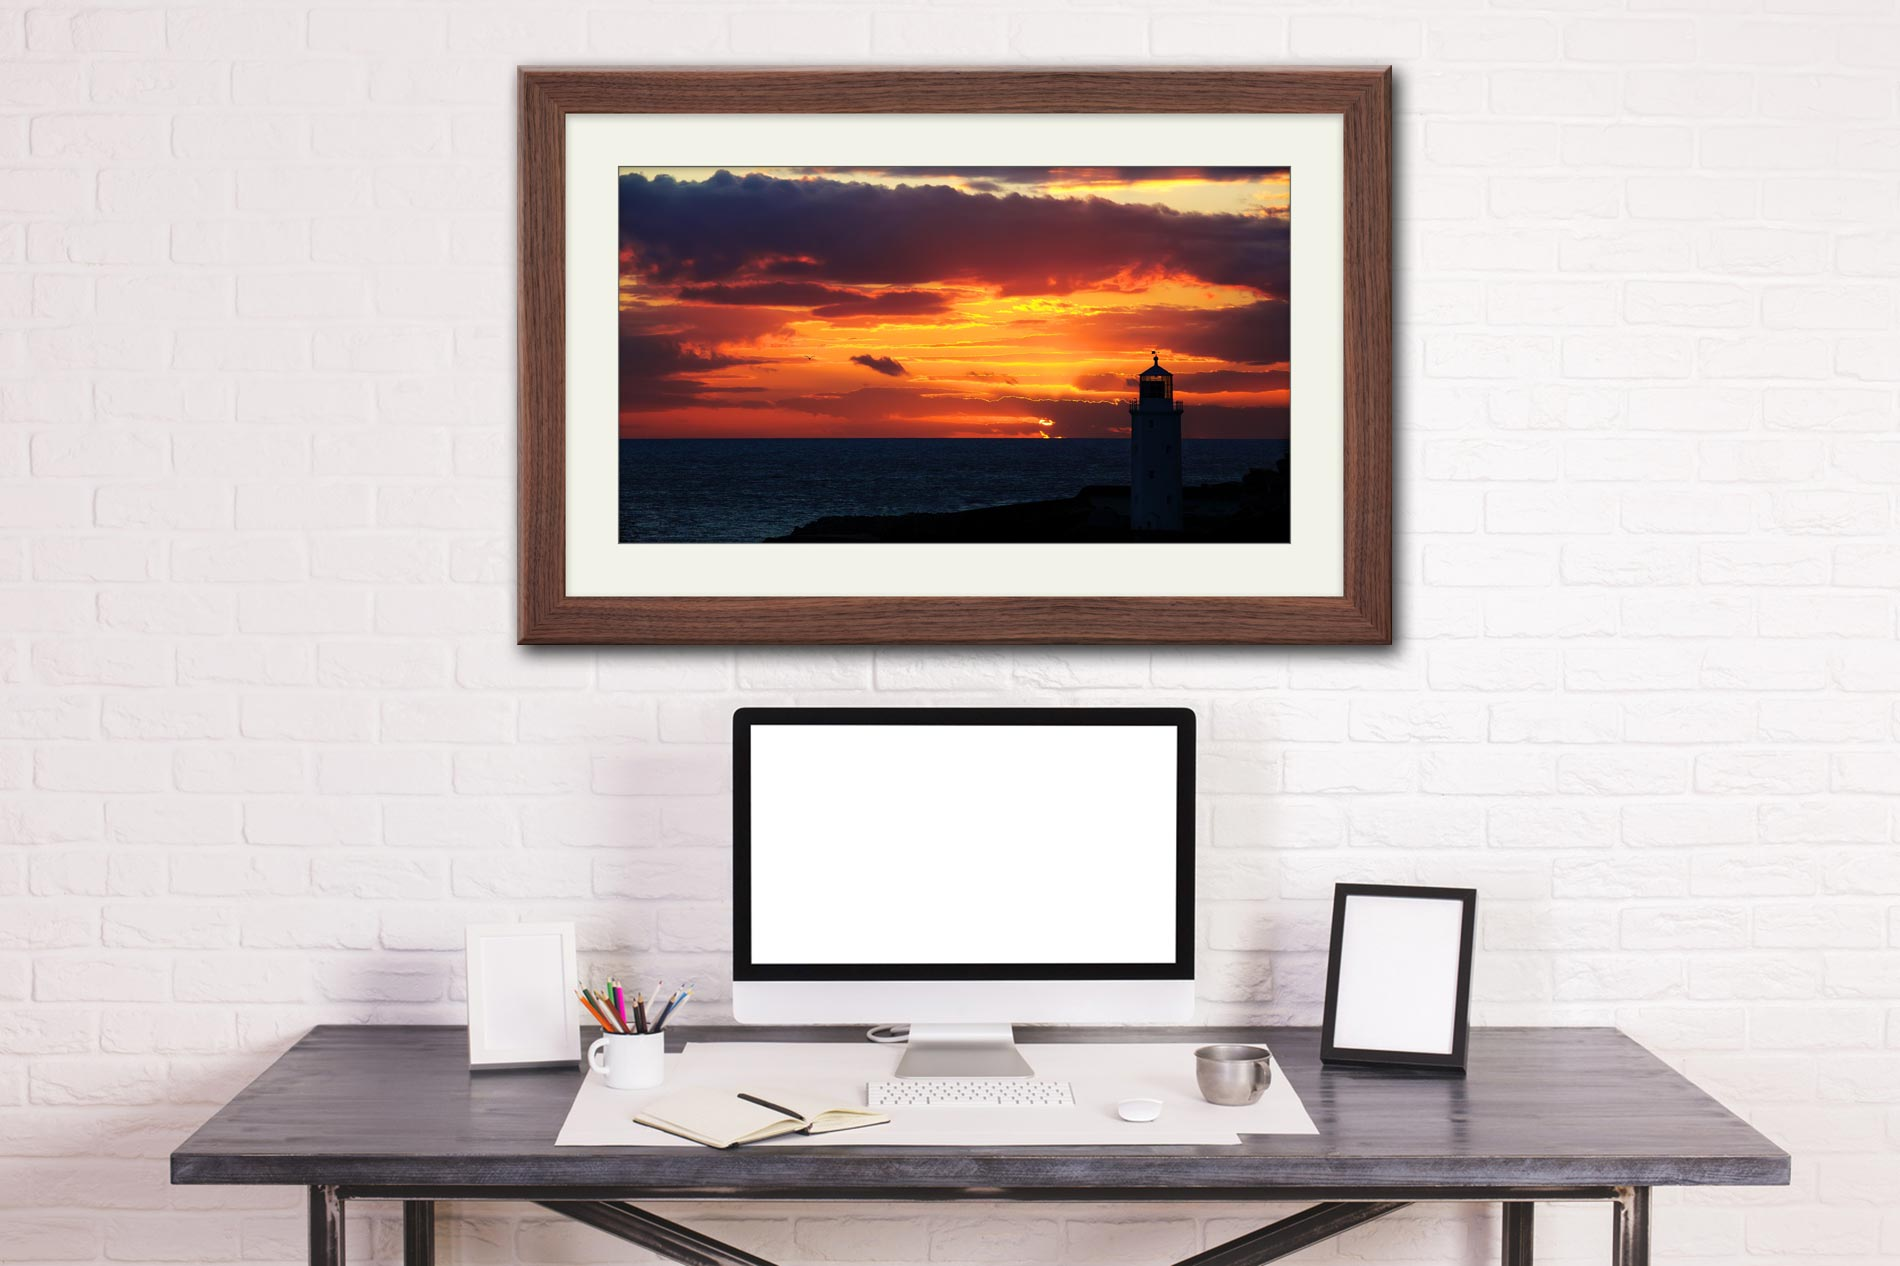 Golden Skies Over Godrevy - Framed Print with Mount on Wall